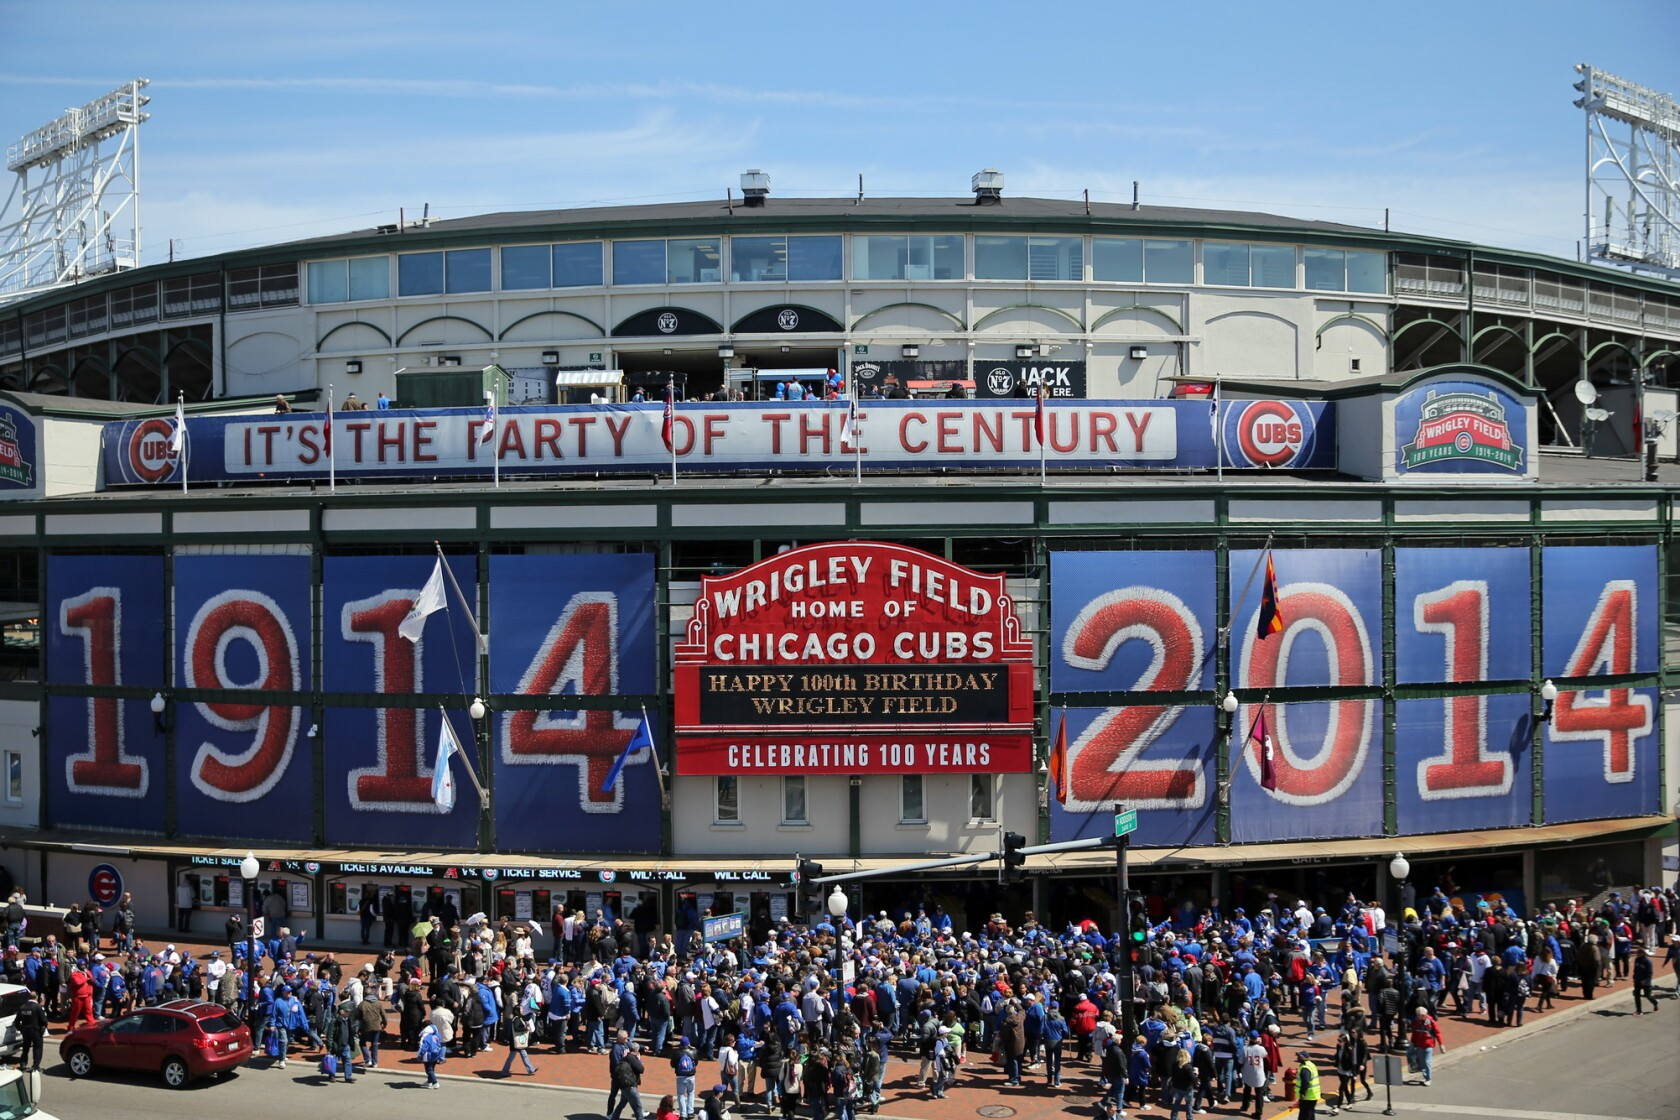 Sirott: Cubs without WGN 'Like Cher without Sonny' - Los